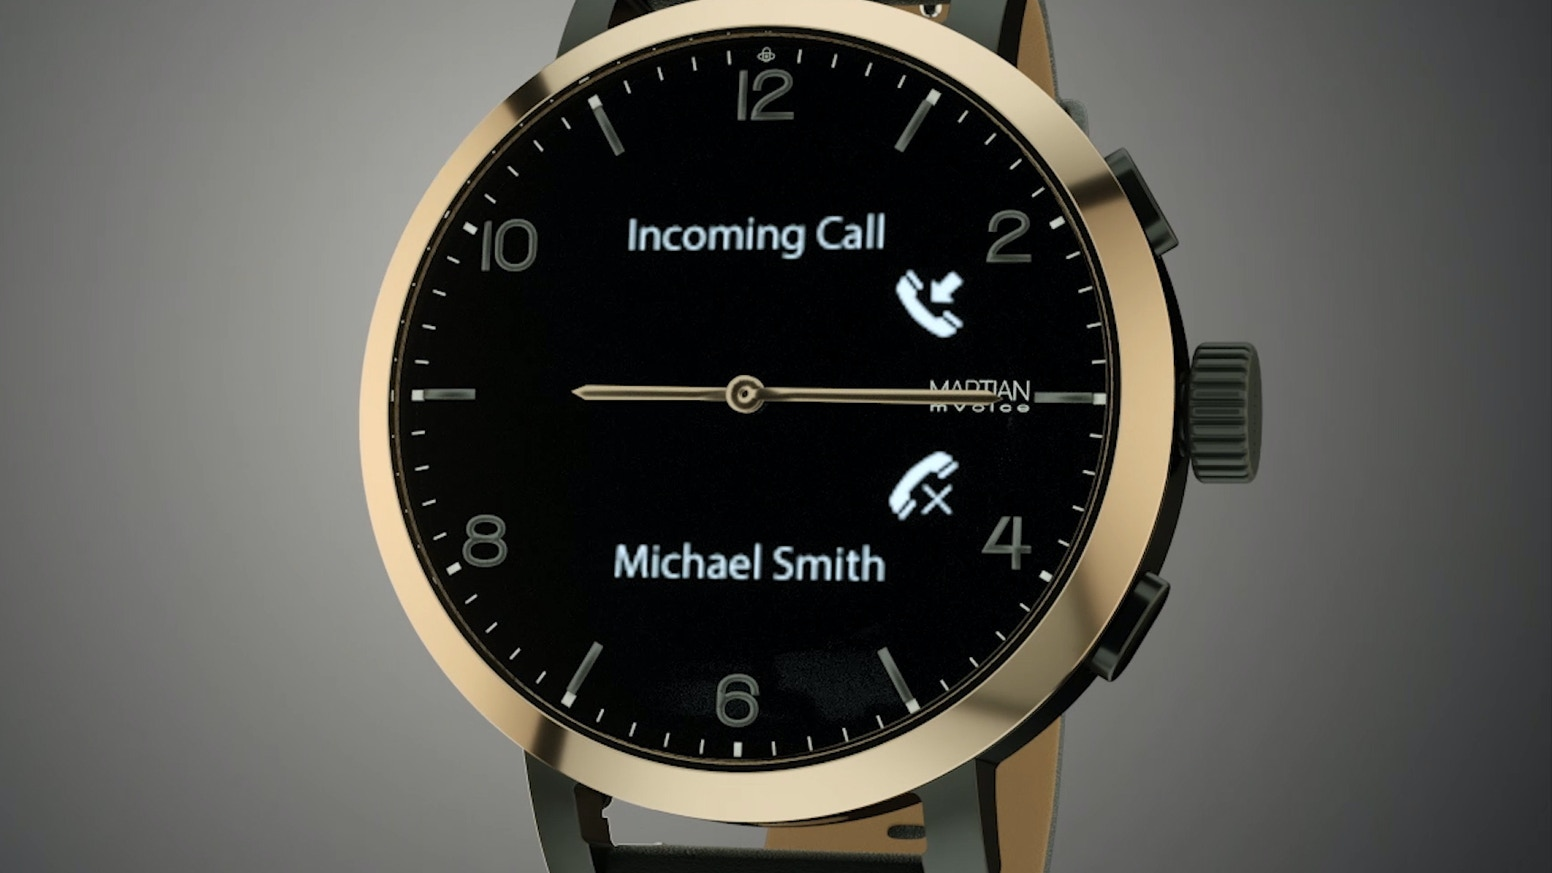 Martian, a smartwatch with analog hands & time markers Initiate Calls & Commands, access Siri, Google & Alexa. Smart Movement & Crown.